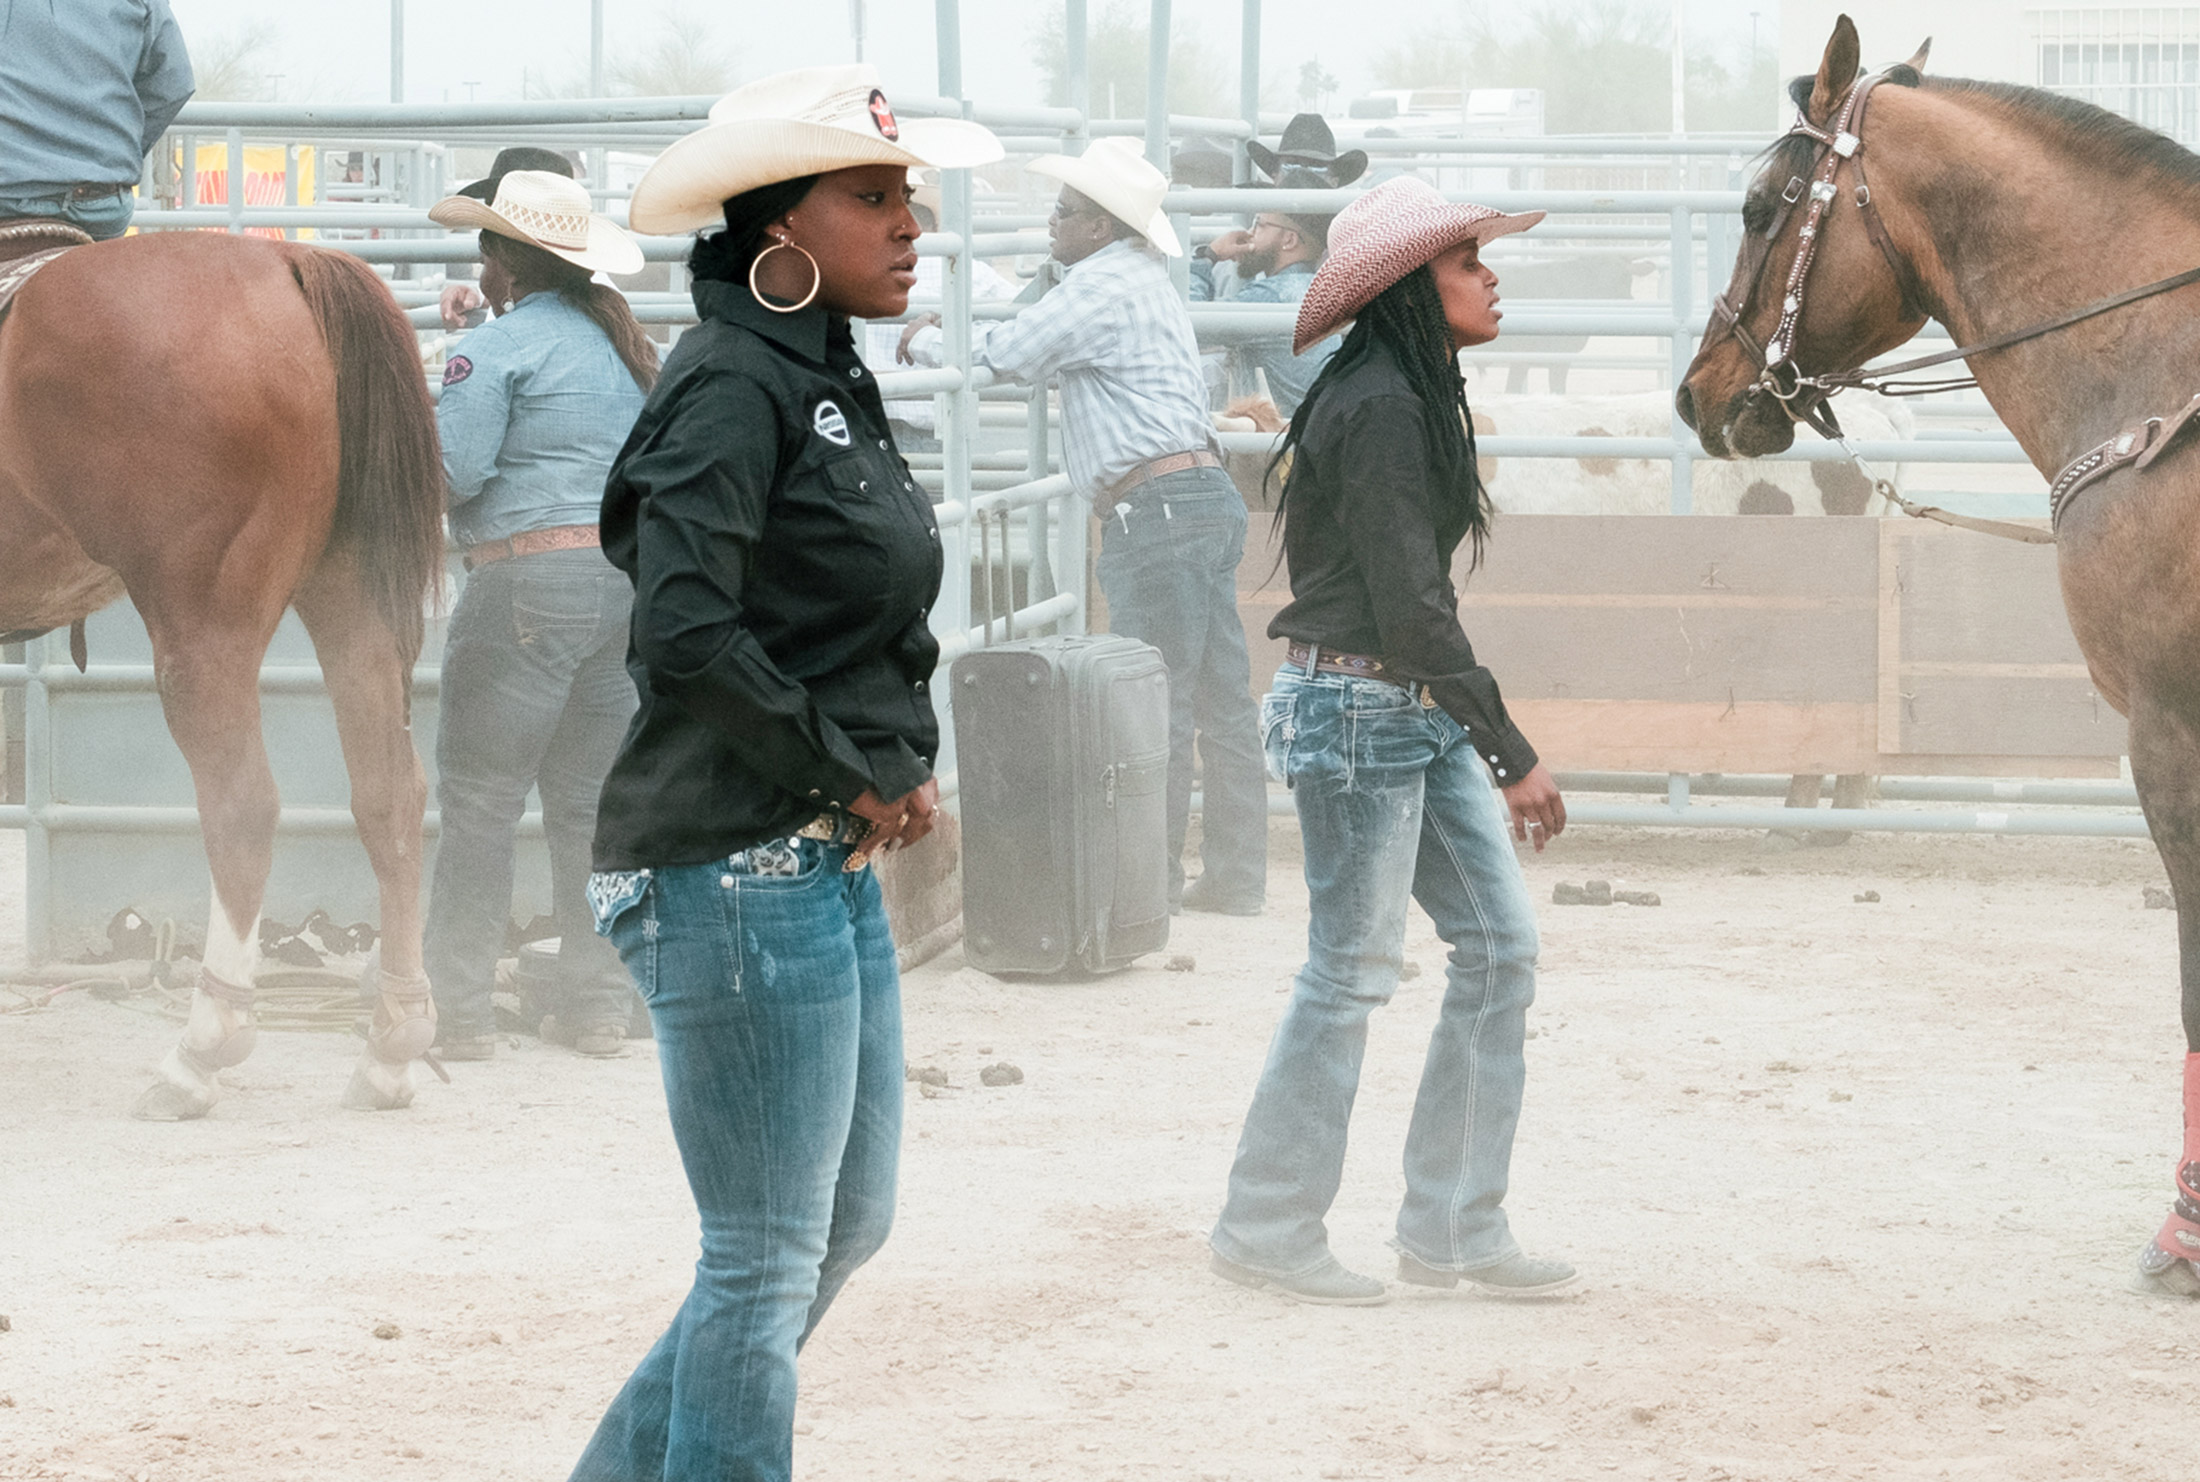 Two women with cowboy hats standing next to horses outdoors in a rodeo arena